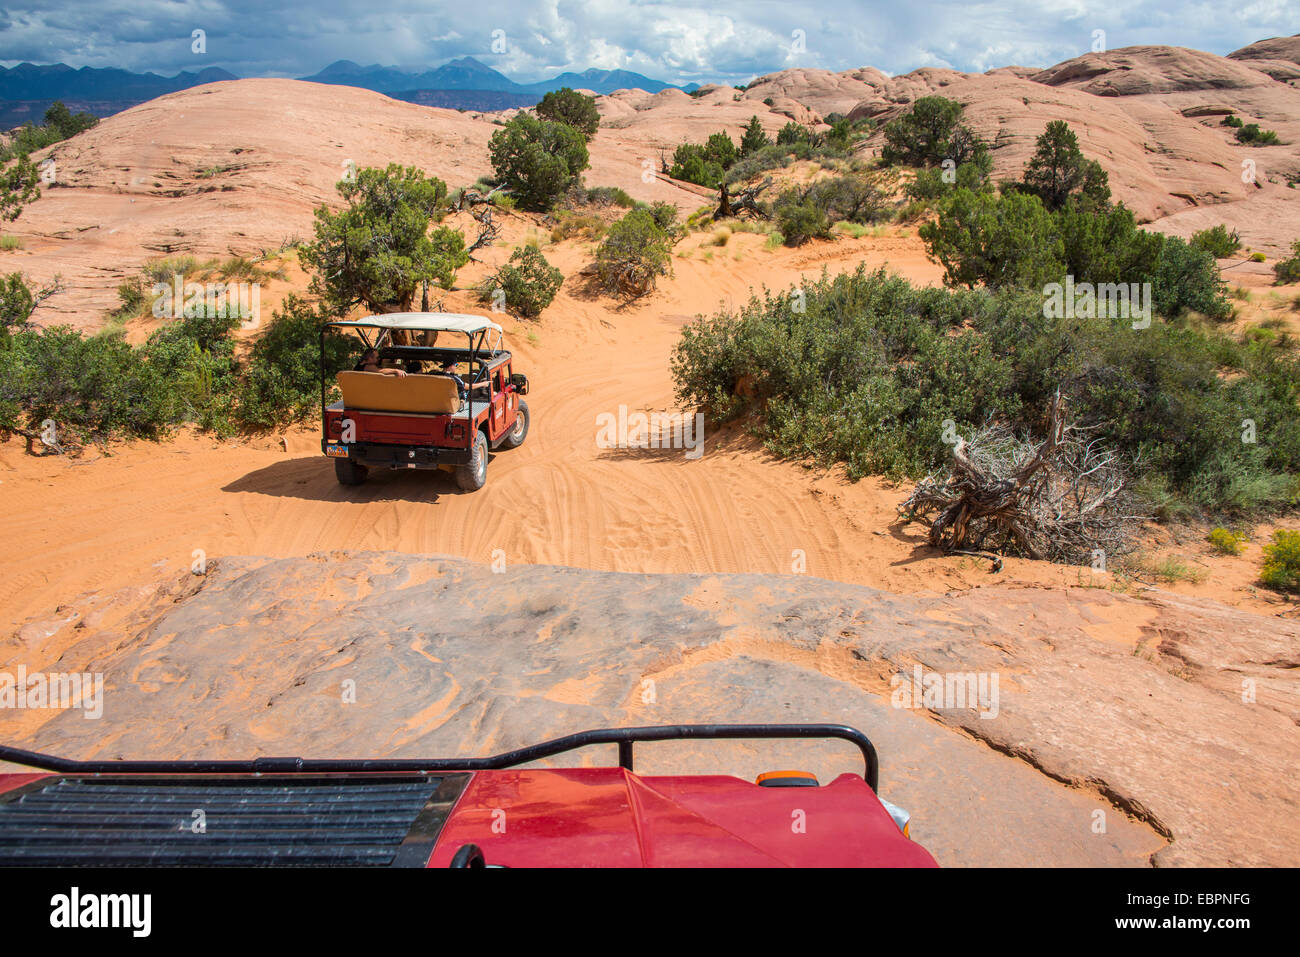 Hummer driving on the Slickrock trail. Moab, Utah, United States of America, North America - Stock Image